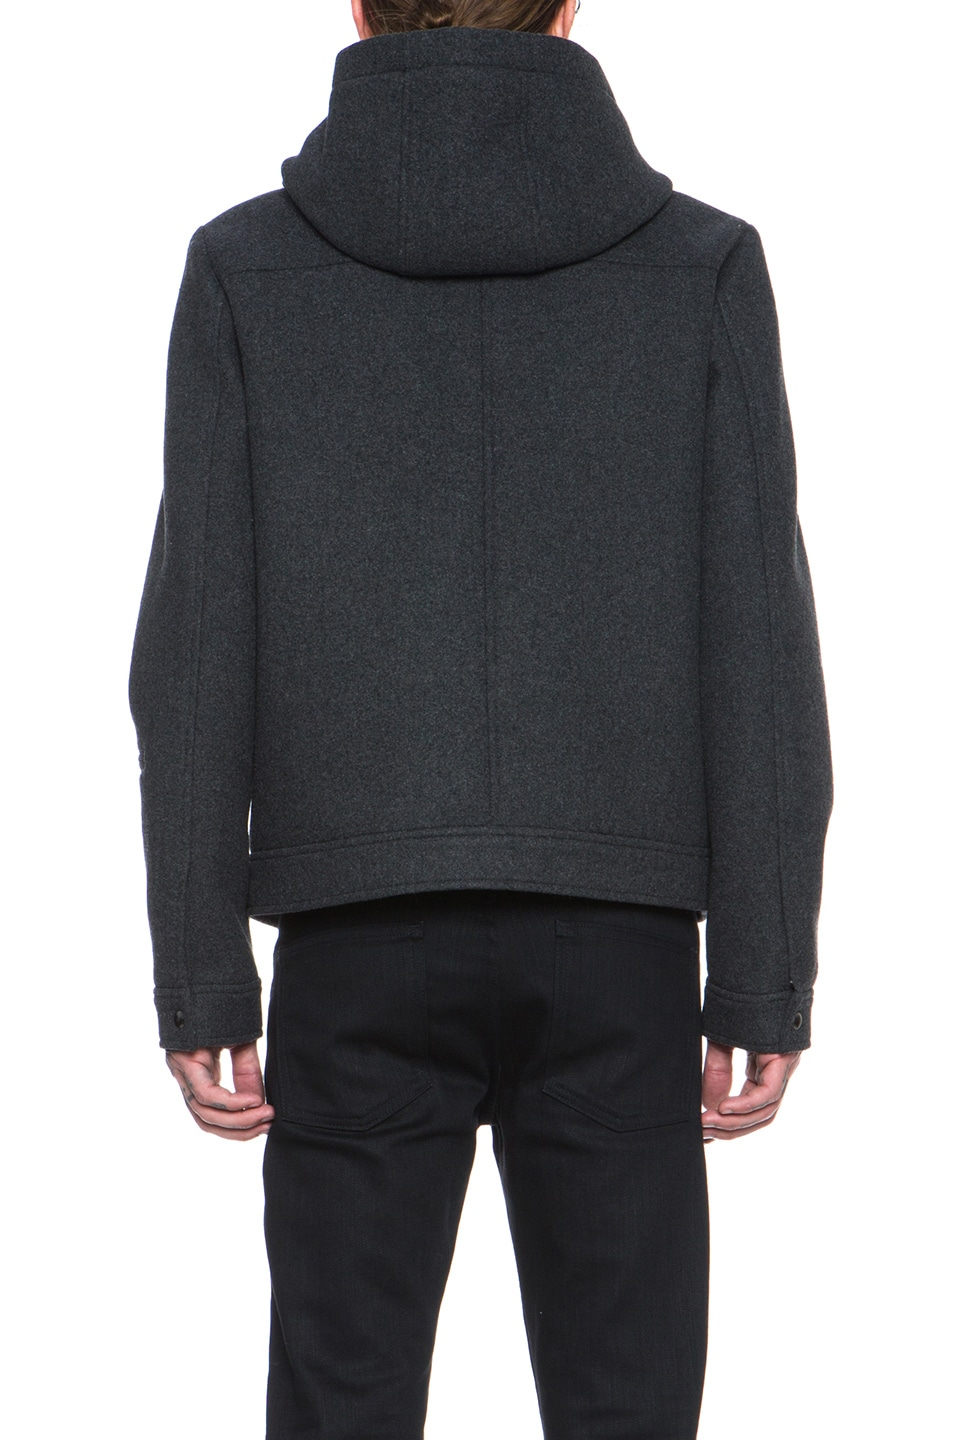 55f599c34653a Image 5 of T by Alexander Wang Wool Bonded Neoprene Jacket in Charcoal